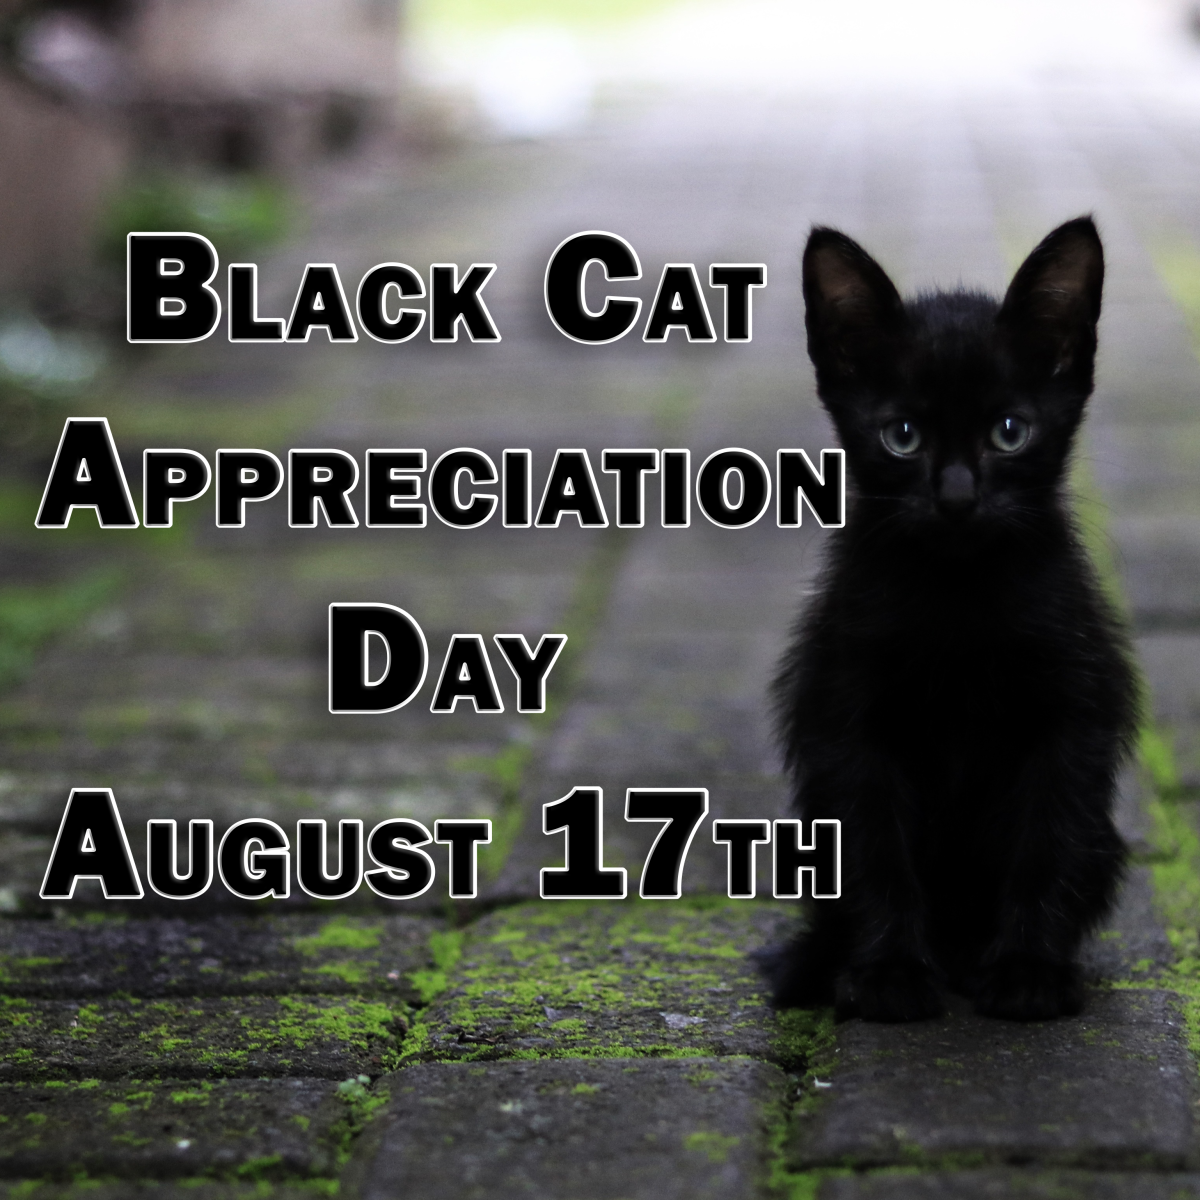 Why You Should Celebrate Black Cat Appreciation Day on August 17th